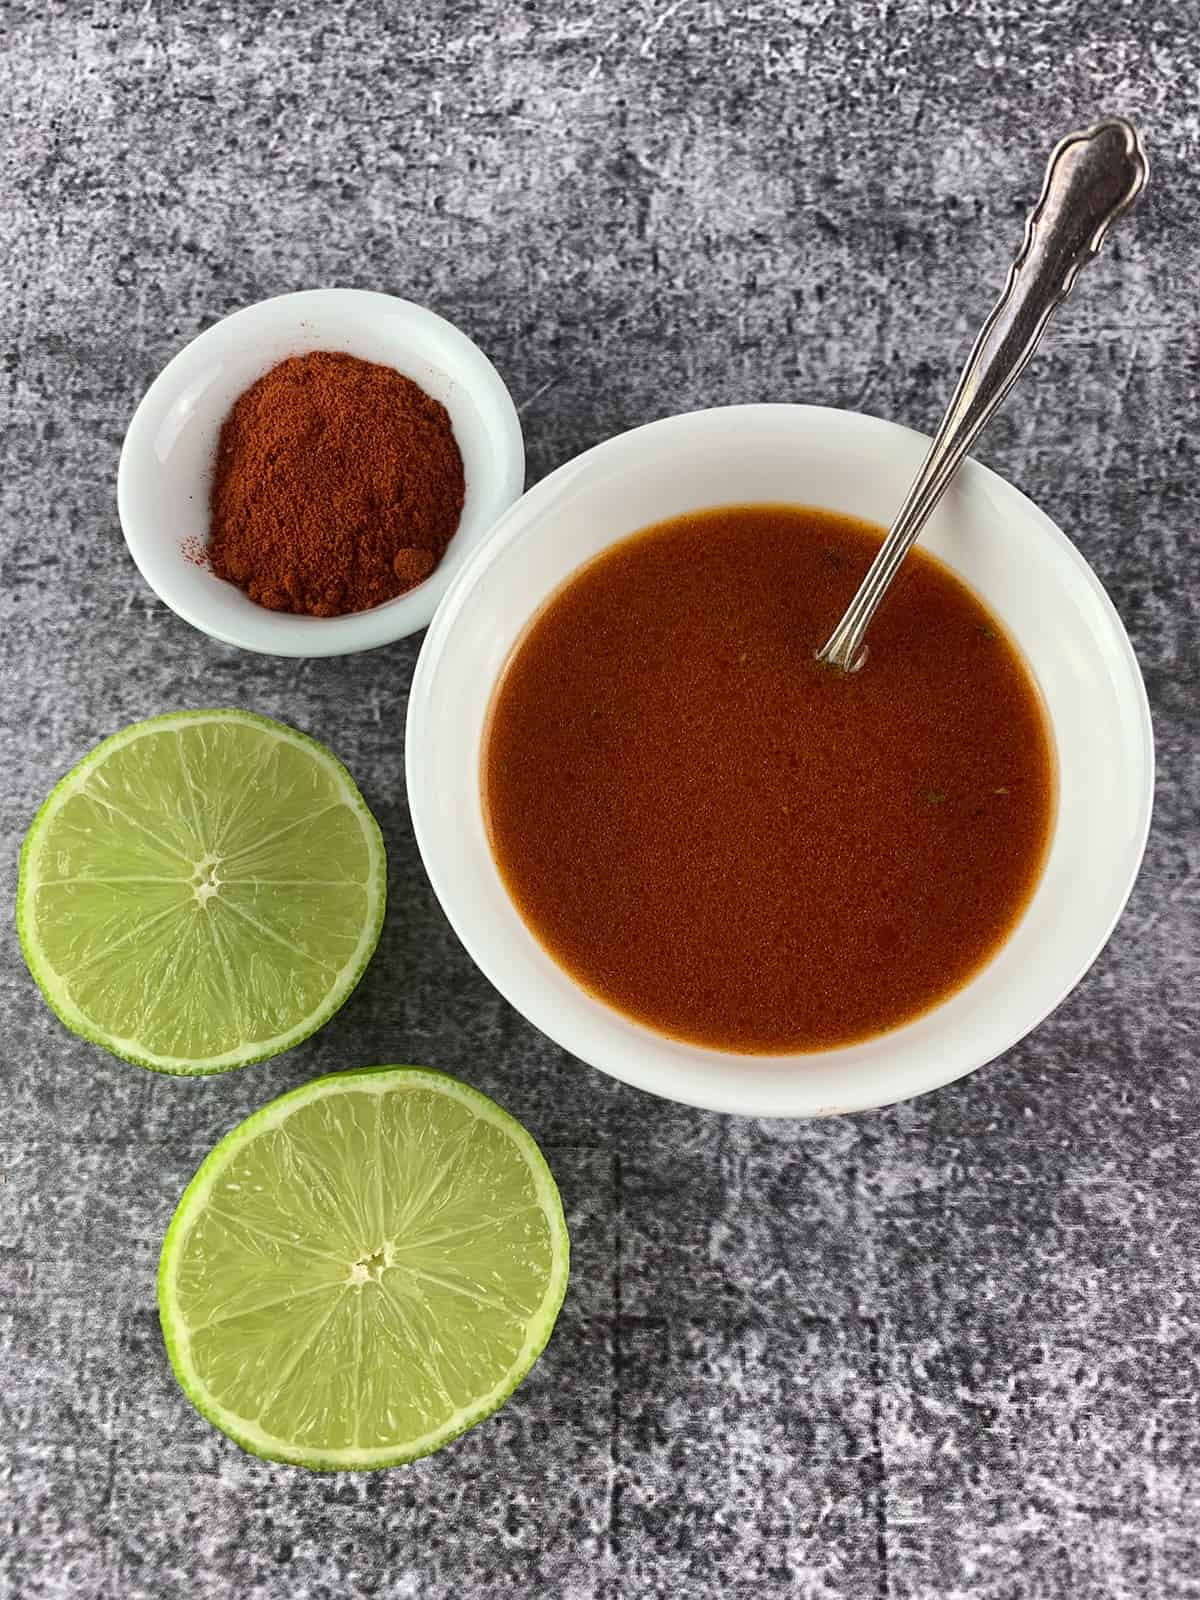 SMOKED PAPRIKA VINAIGRETTE IN WHITE BOWL WITH LIMES AND PAPRIKA PORTRAIT VIEW